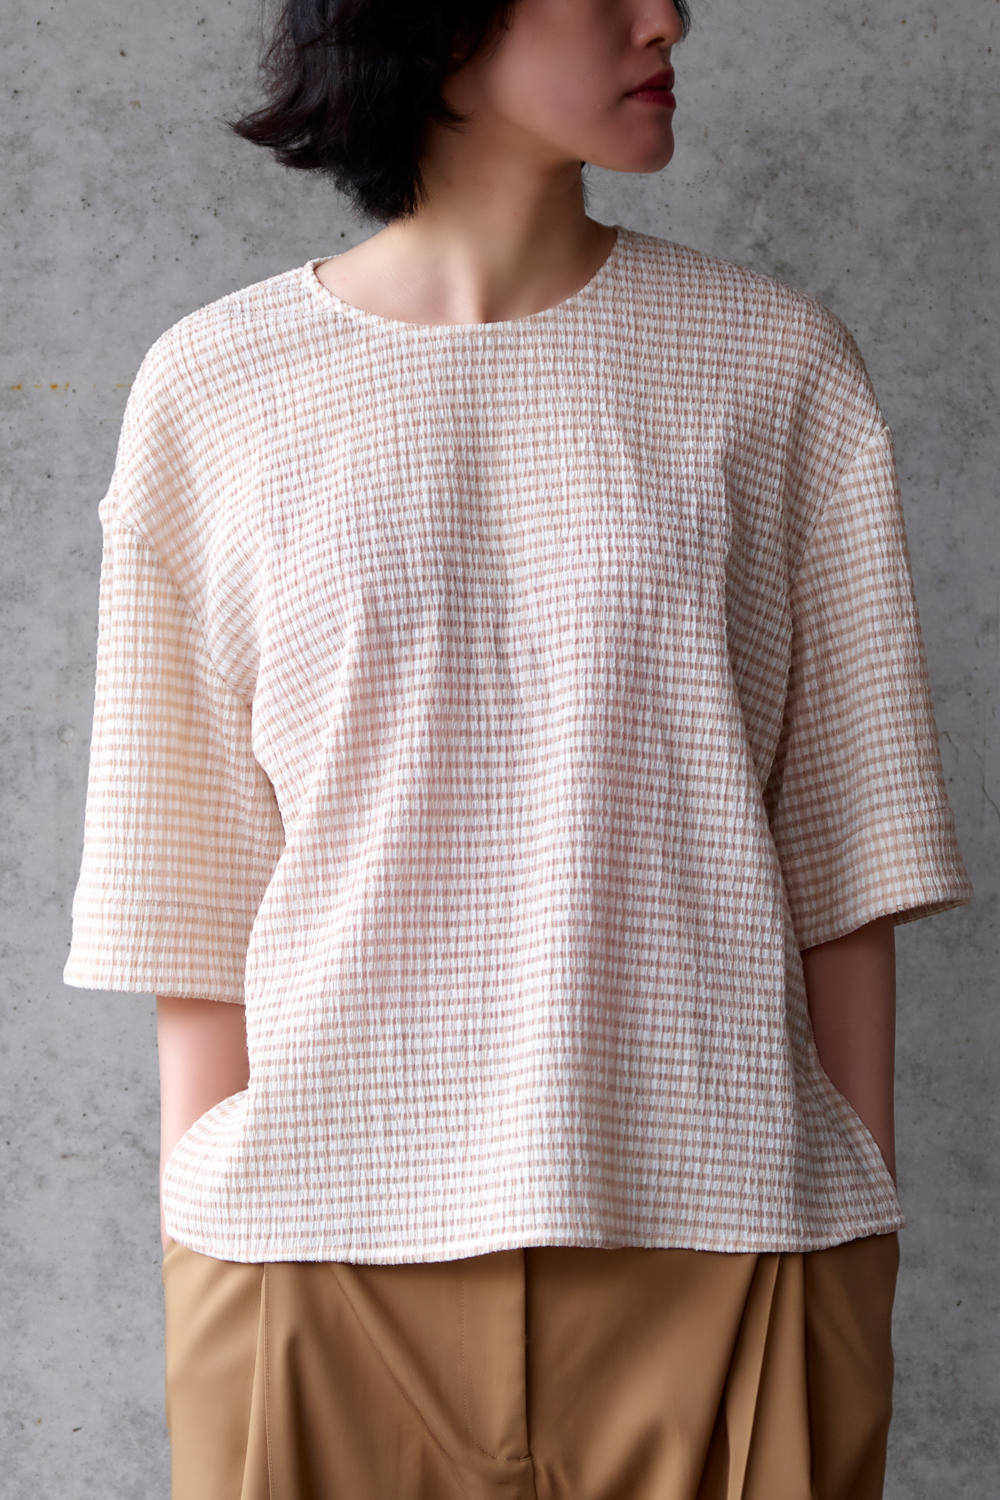 【20SS】BOXY T-SHIRT - ボクシーTシャツ [BEIGE WHITE CHECK]